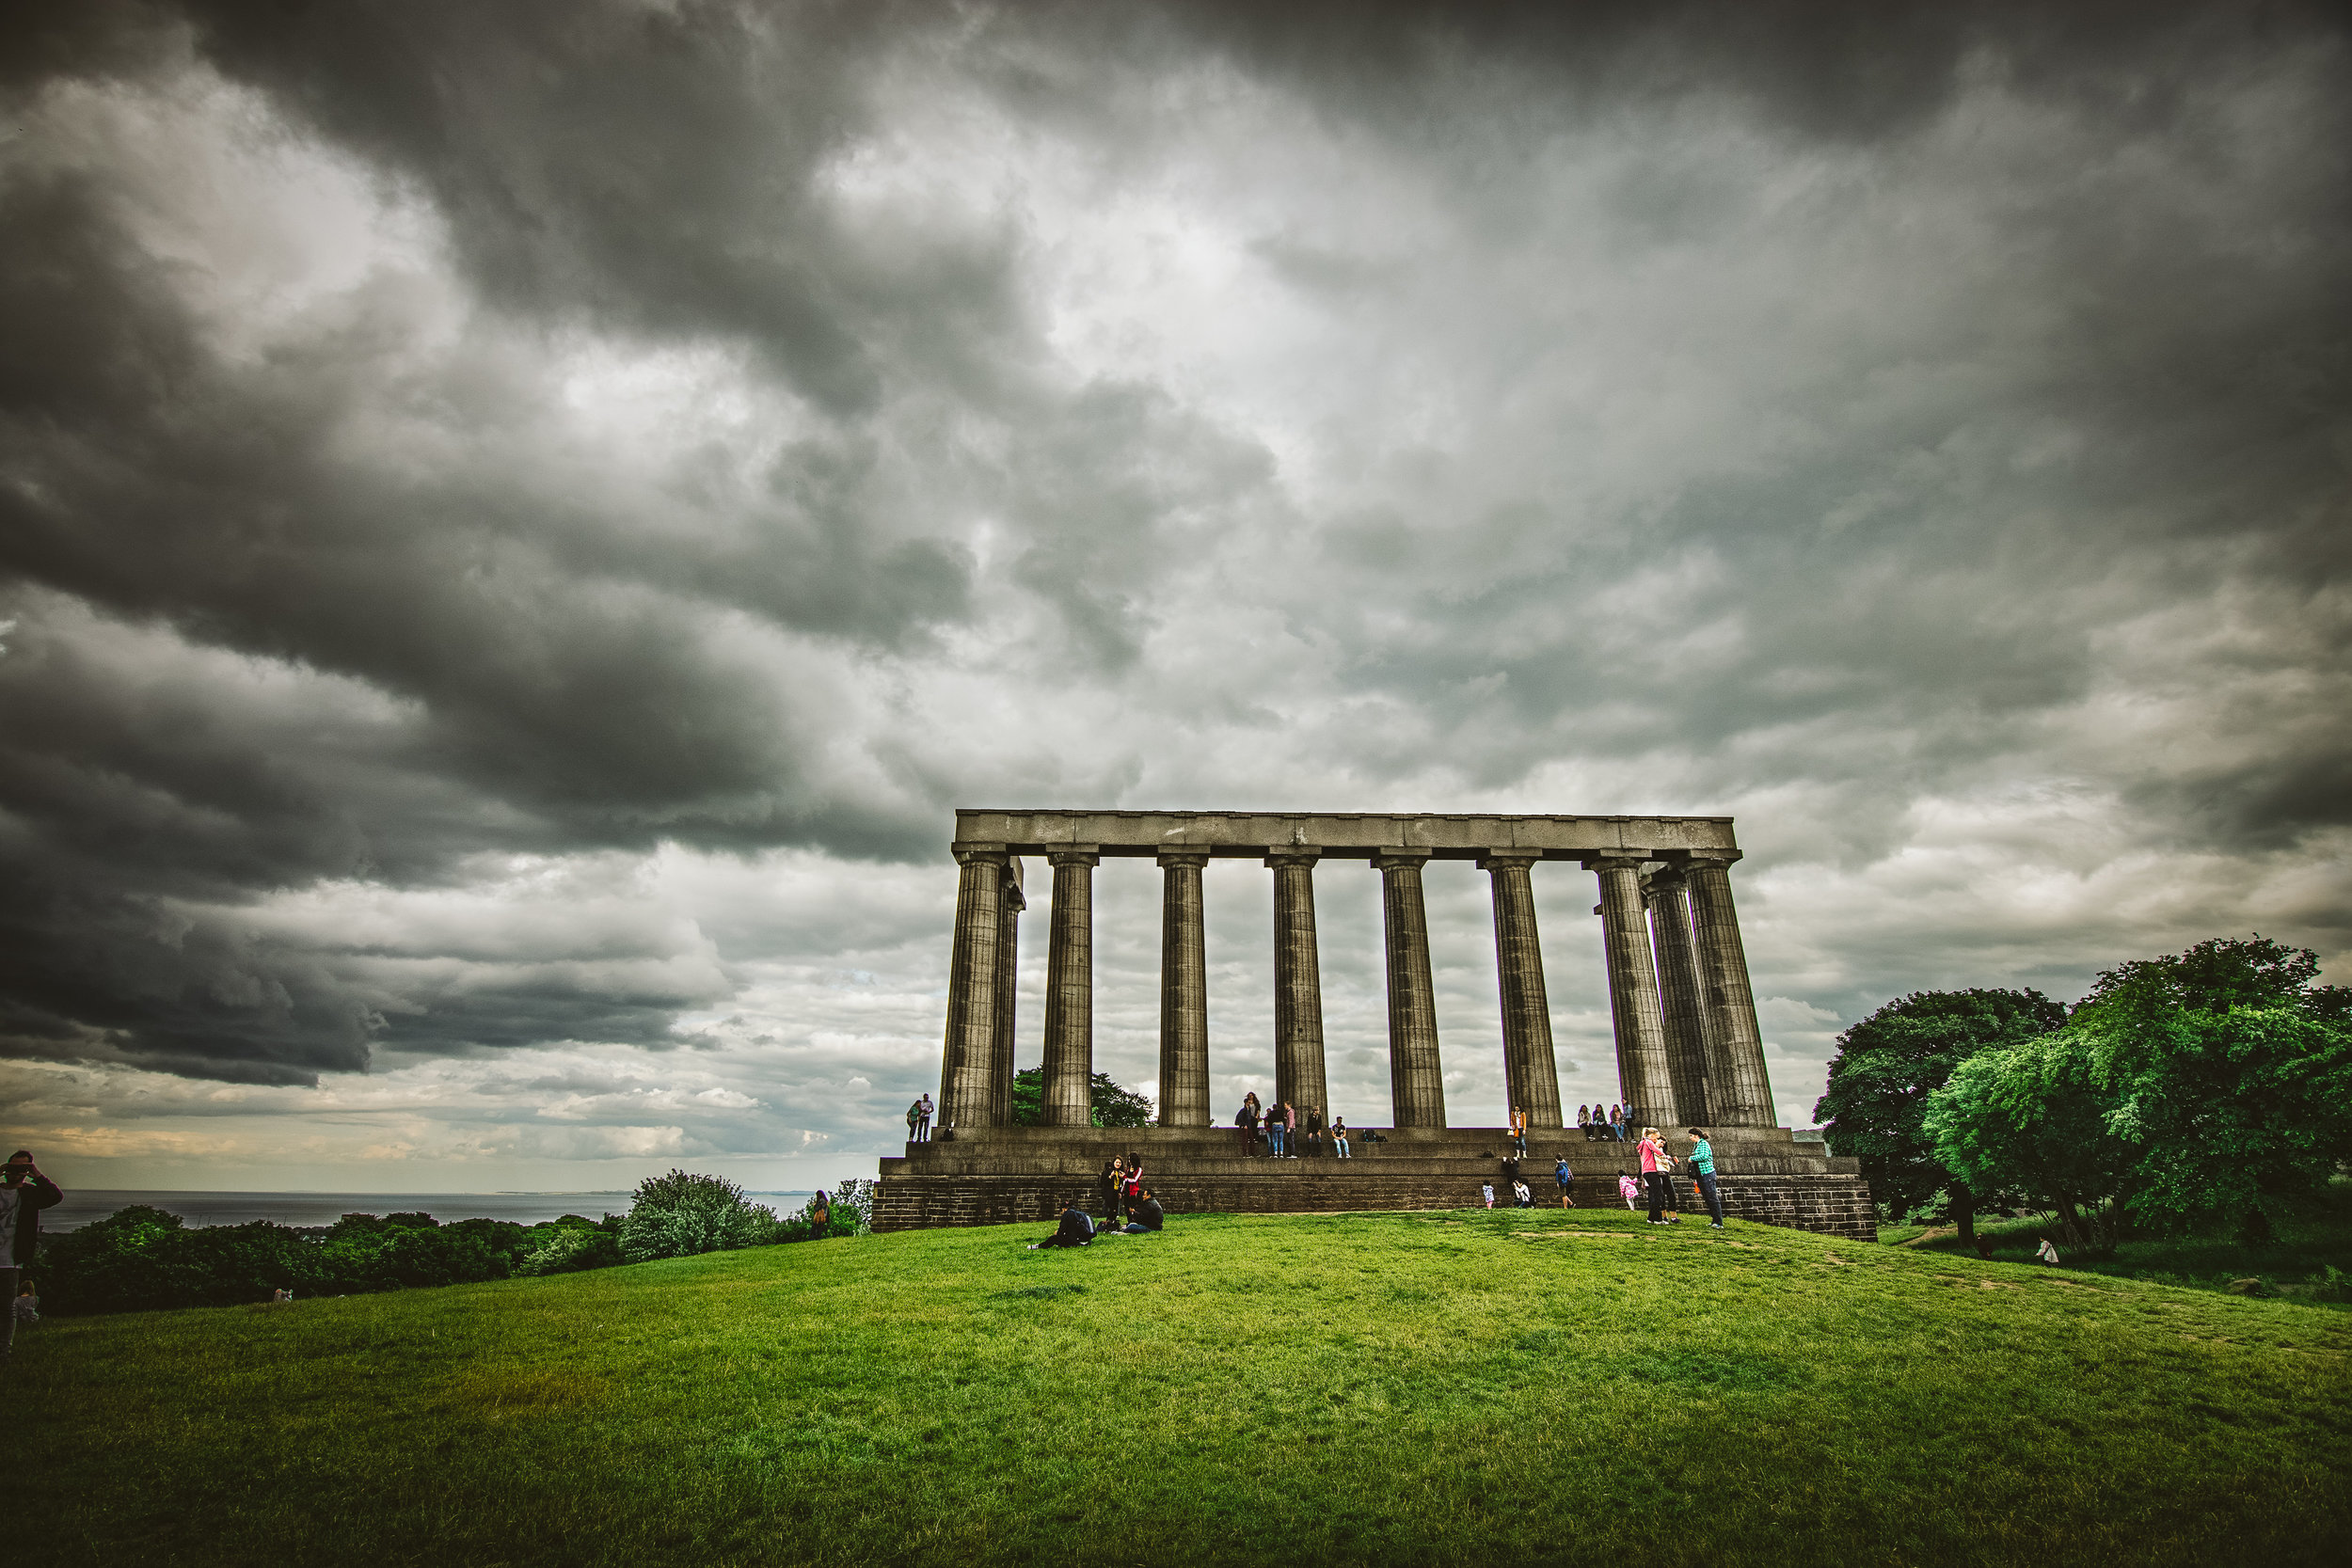 """Again with the multiple names, here's the National Monument of Scotland to honour soldiers & sailors. Because it wasn't meant to look like a folly, but rather an actual replica of the full Parthenon until money ran out, other names include """"Scotland's Disgrace"""" and """"The Pride and Poverty of Scotland""""."""